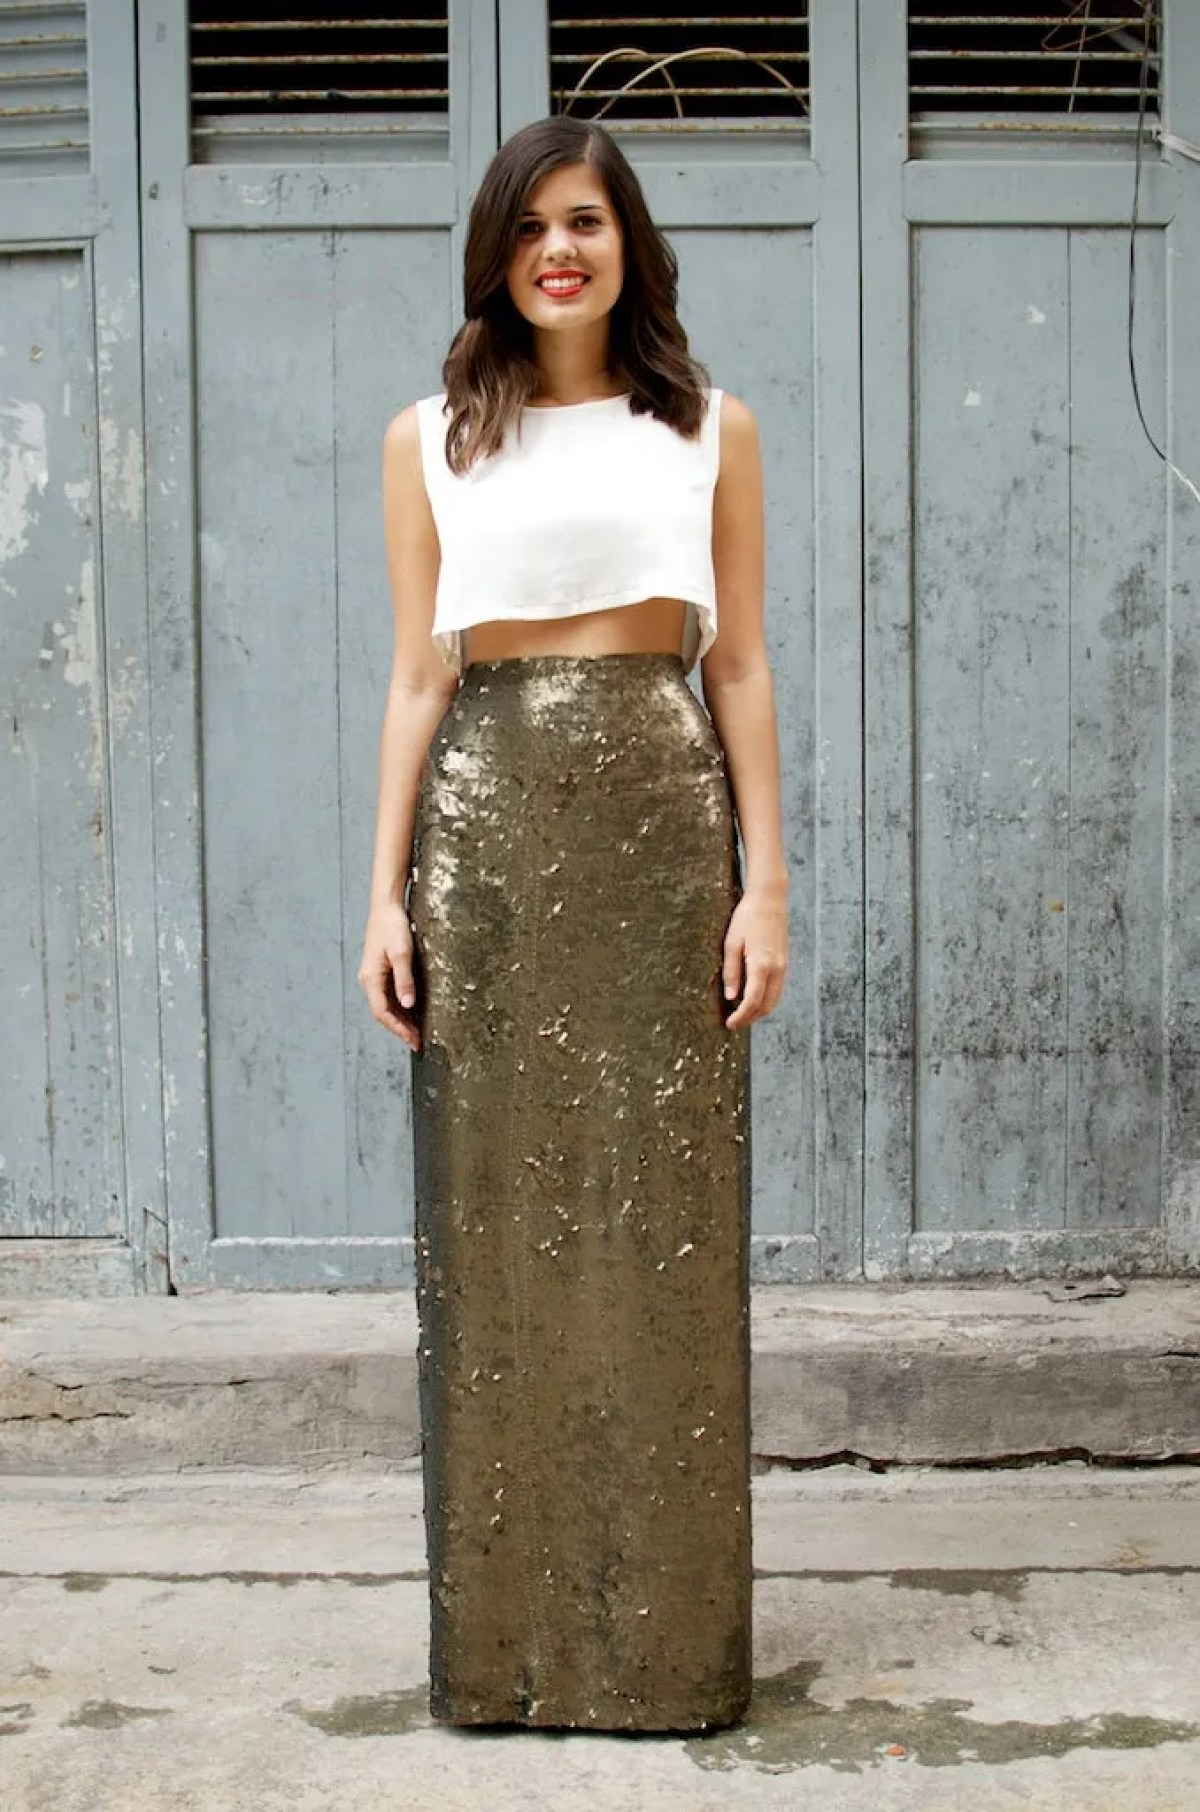 10 Free DIY Skirt Sewing Patterns - Wedding Guest Friendly Skirts! - DIY Sequin Maxi Wrap Skirt - from A Pair & A Spare